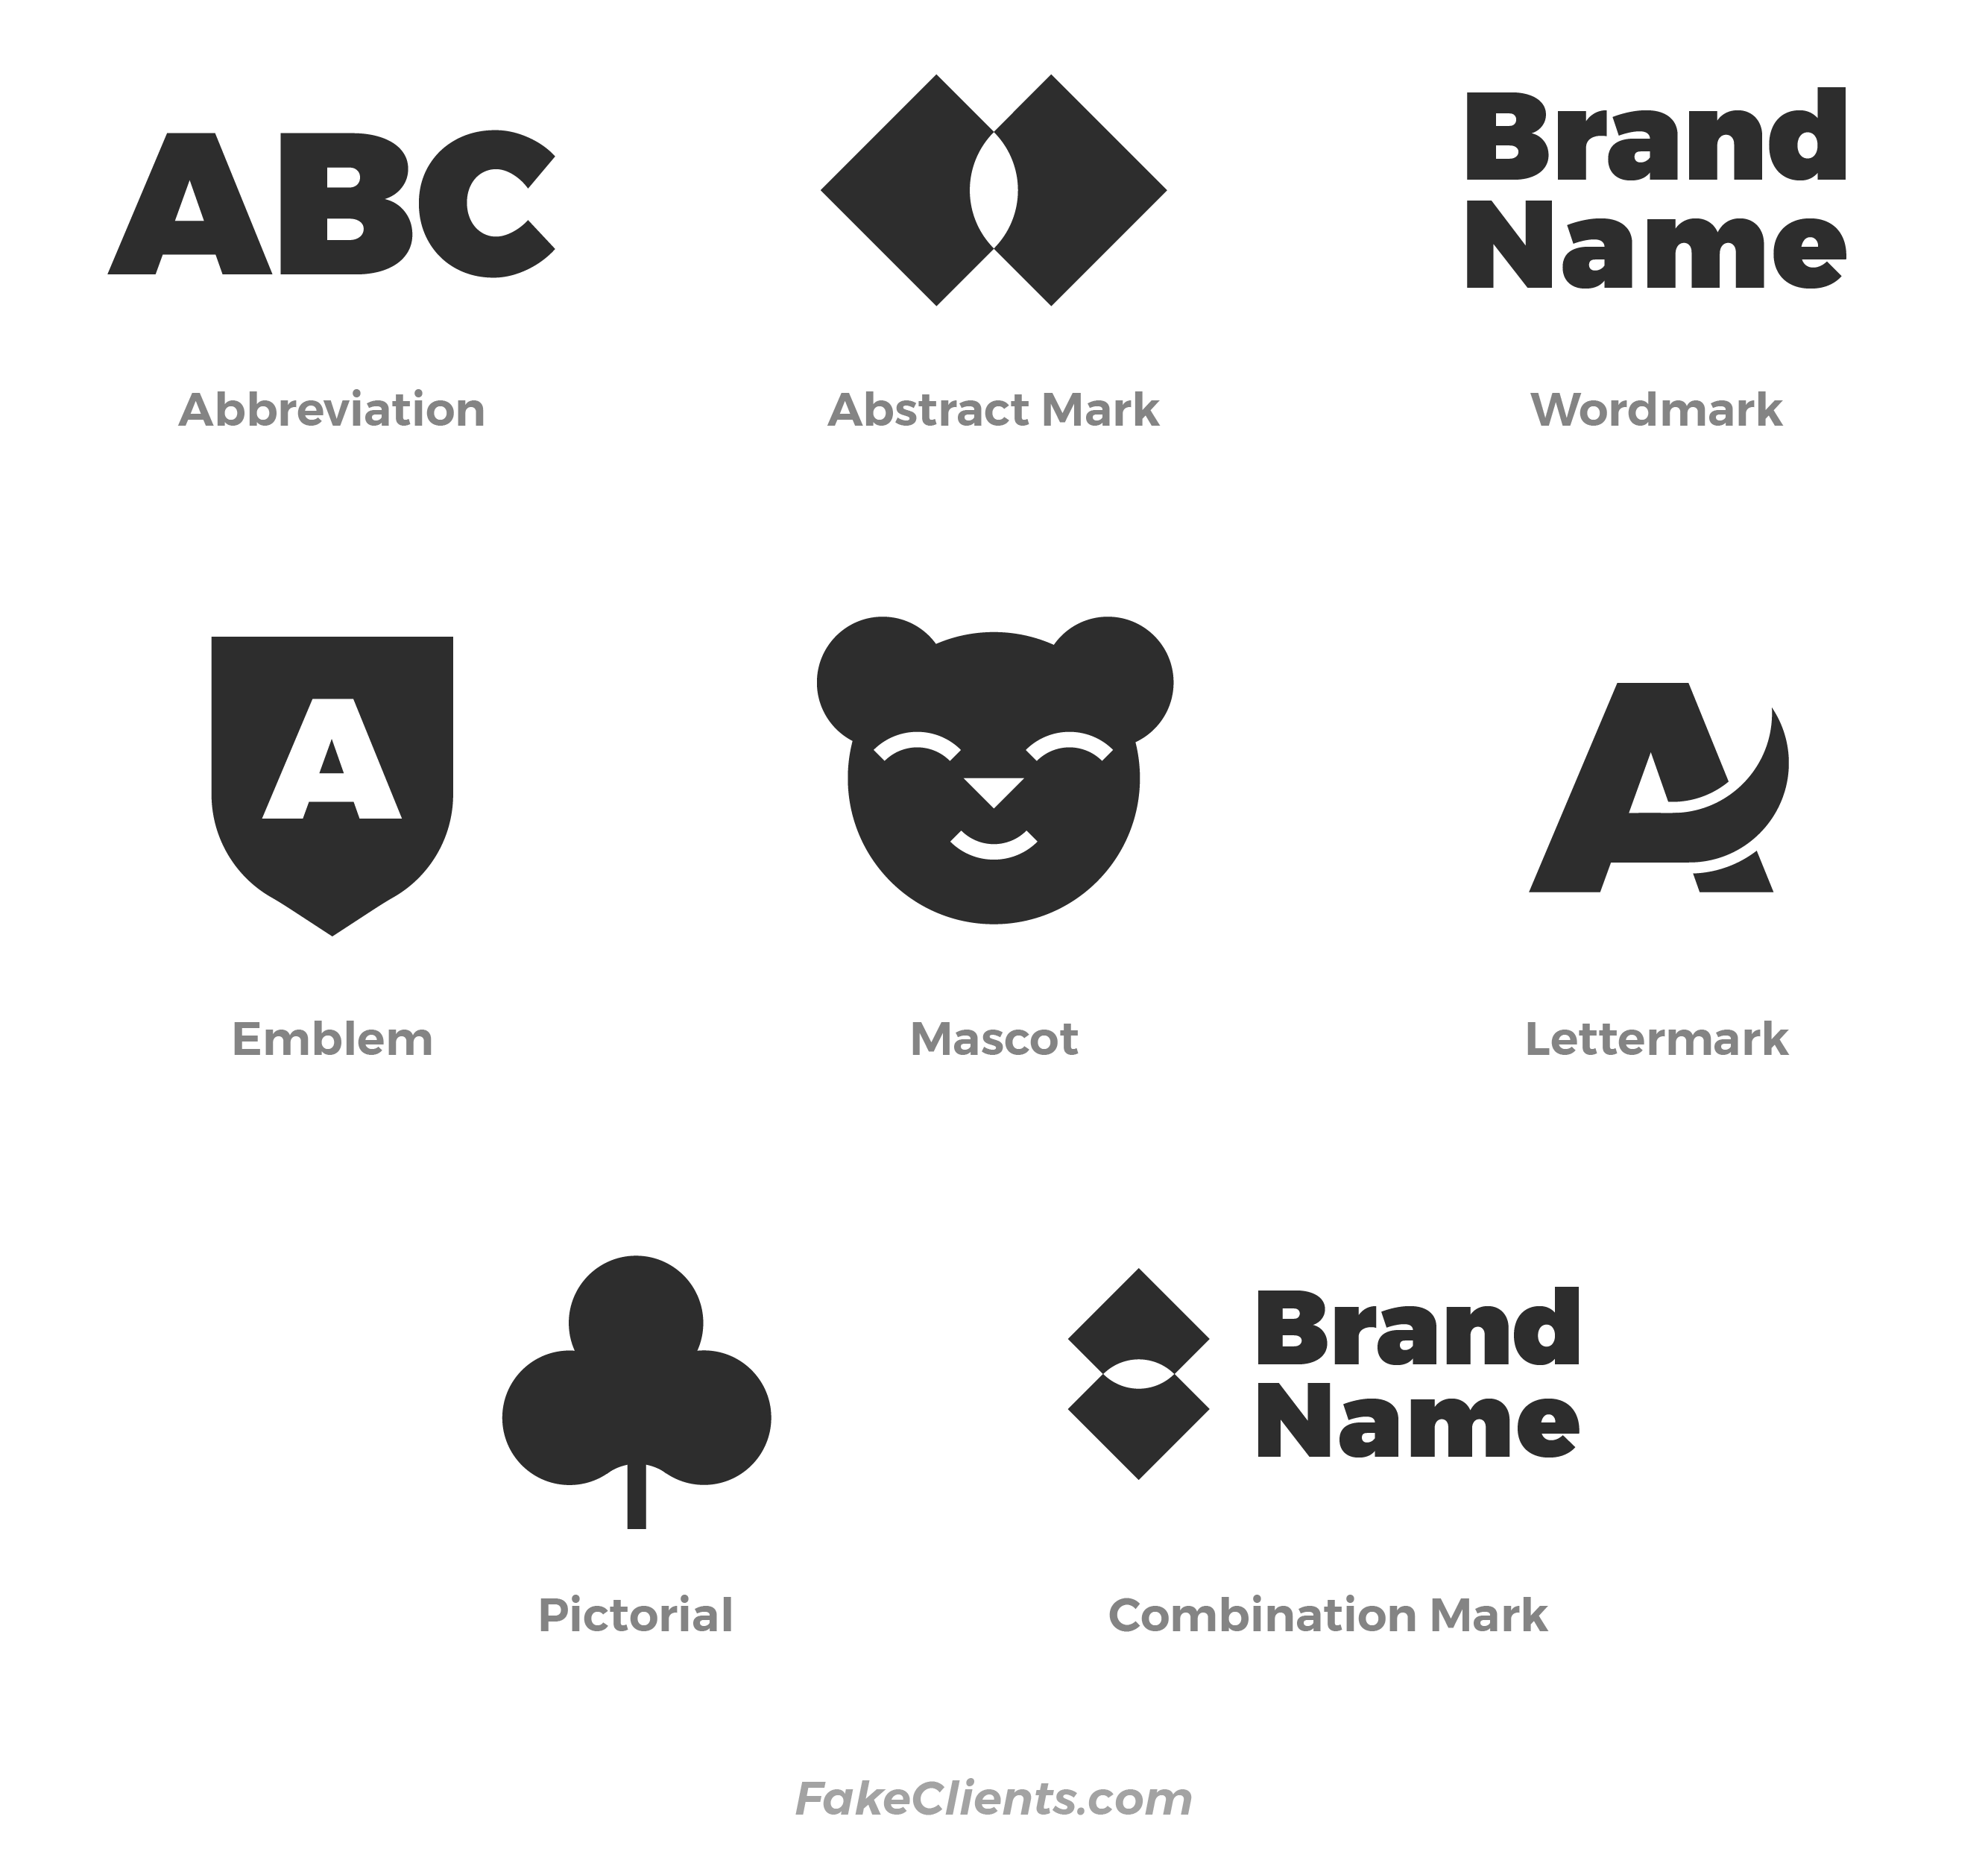 A visual guide of all the types of logos